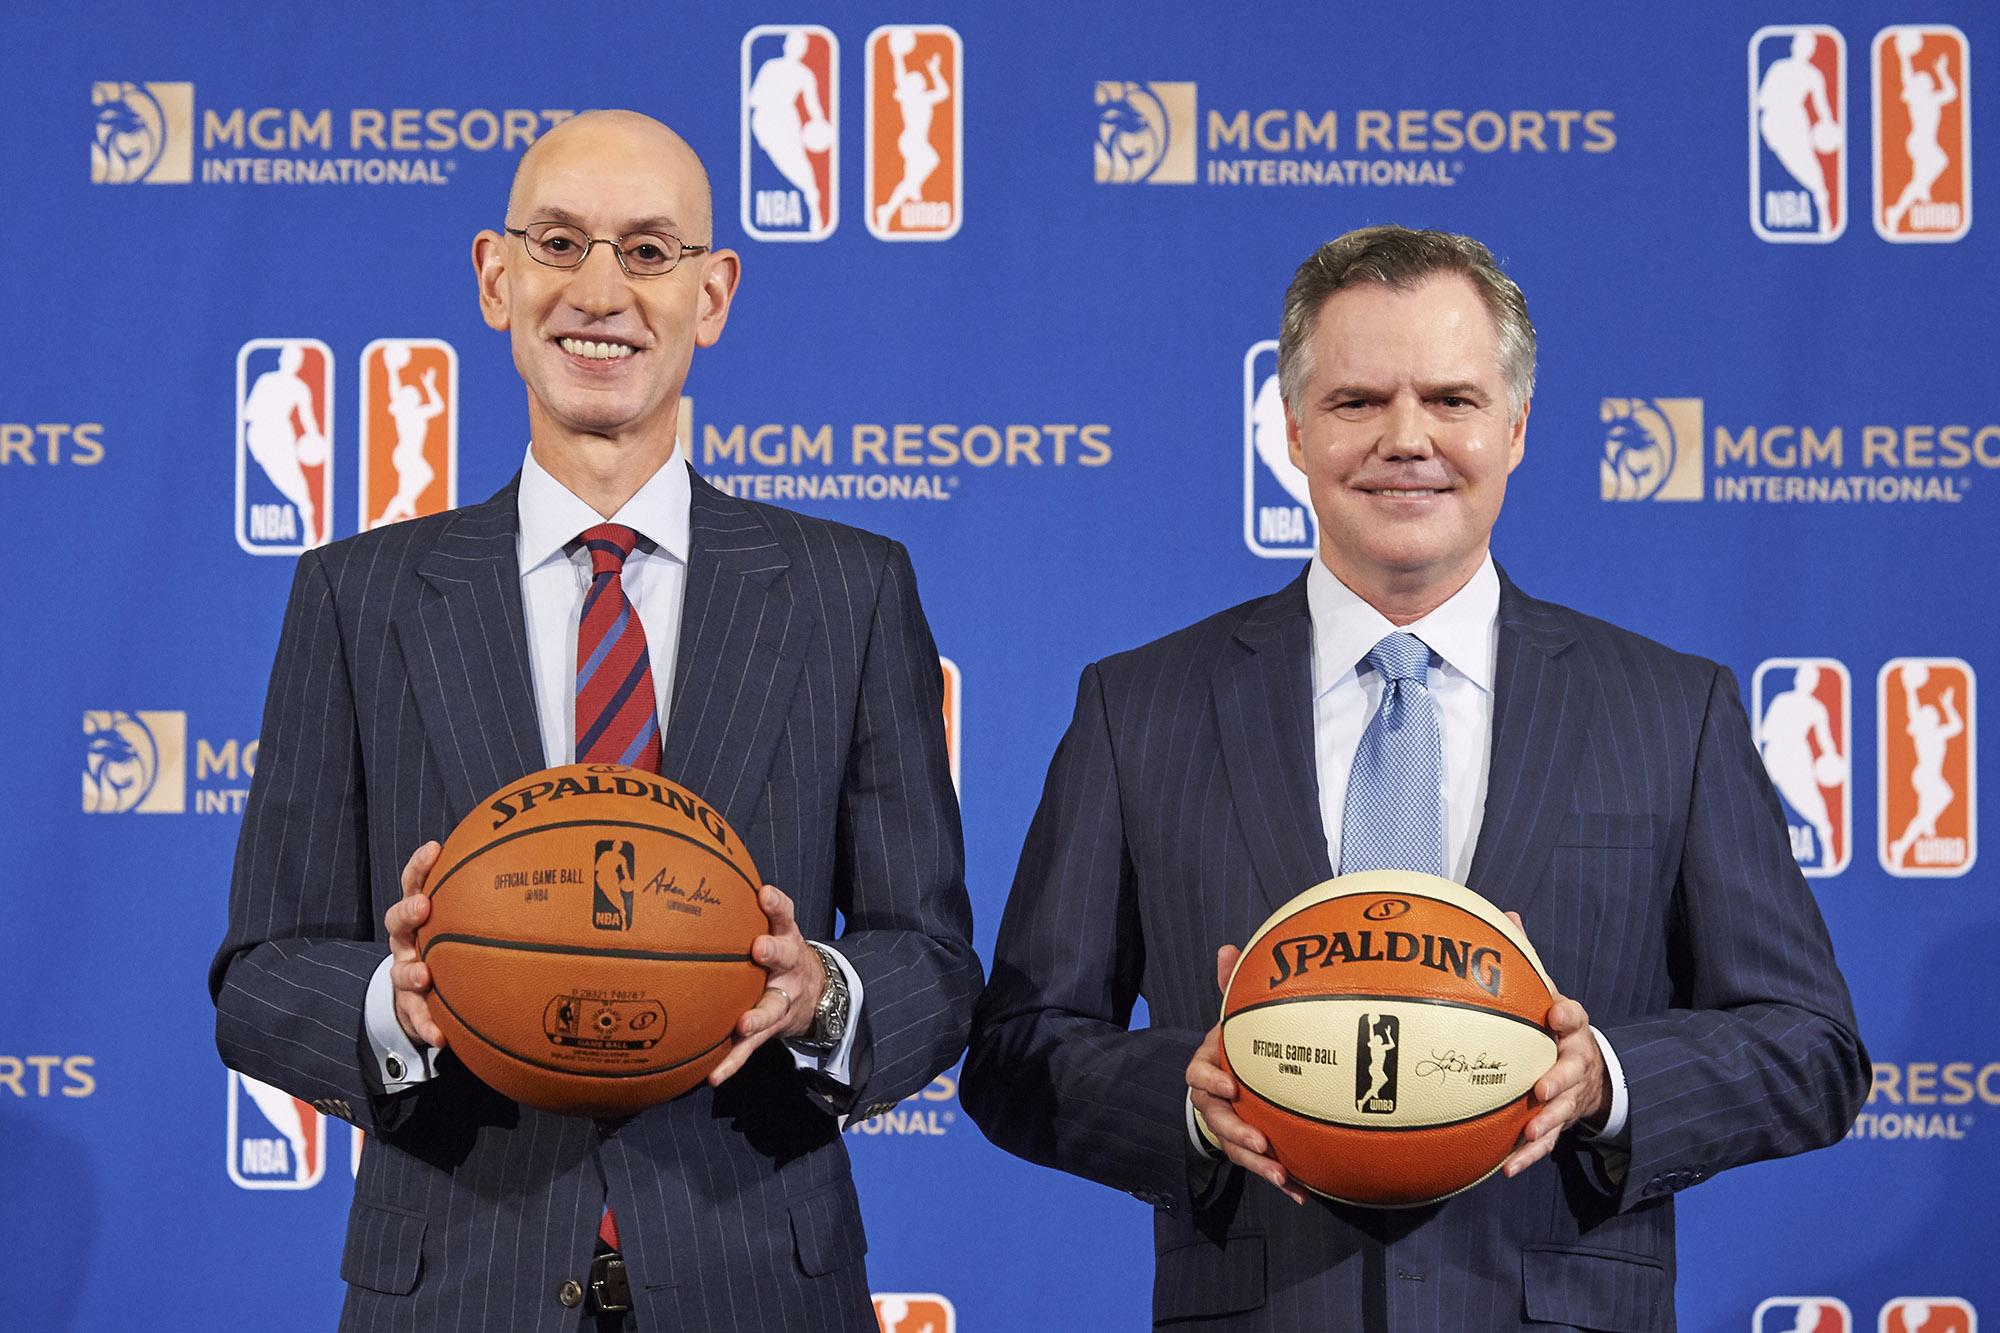 MGM Resorts Signs Sportsbetting Deal with NBA